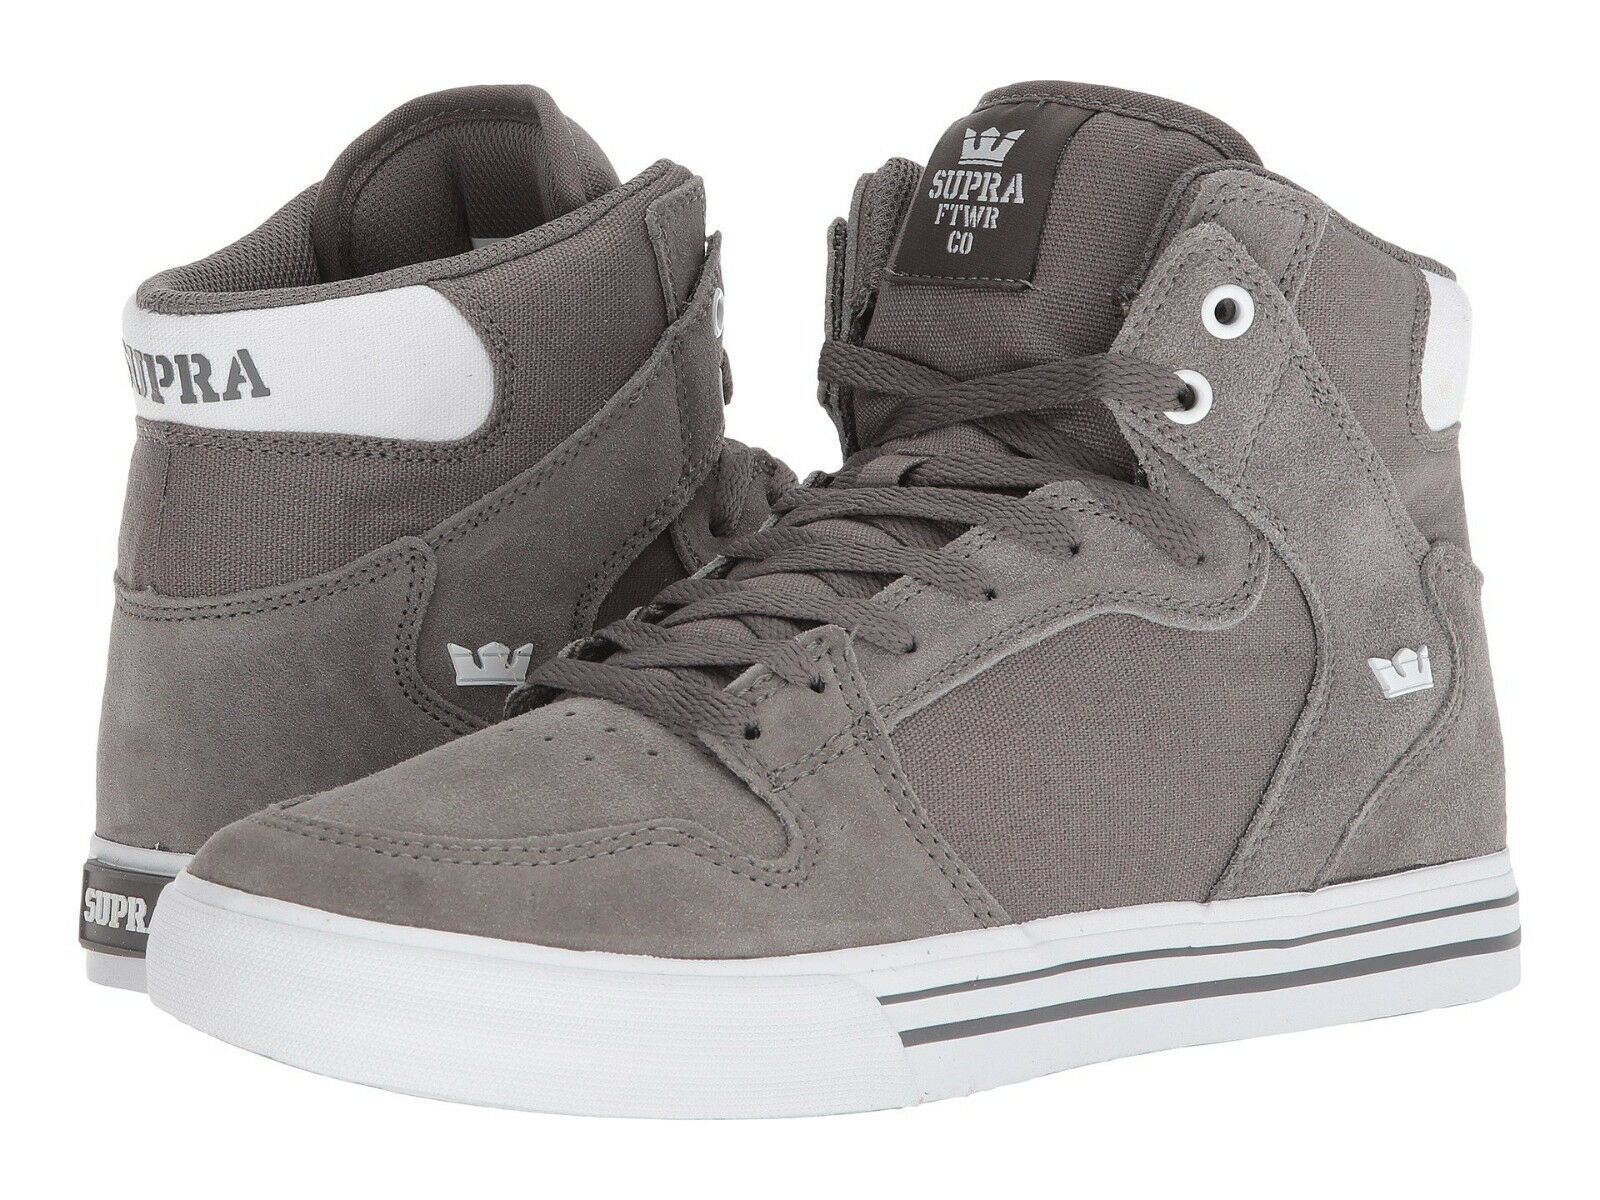 NEW NEW SUPRA VAIDER CHARCOAL WHITE WHITE CHARCOAL SURF BMX SNOW SKATEBOARD SPORTS SHOES 9.5 Scarpe classiche da uomo 704384